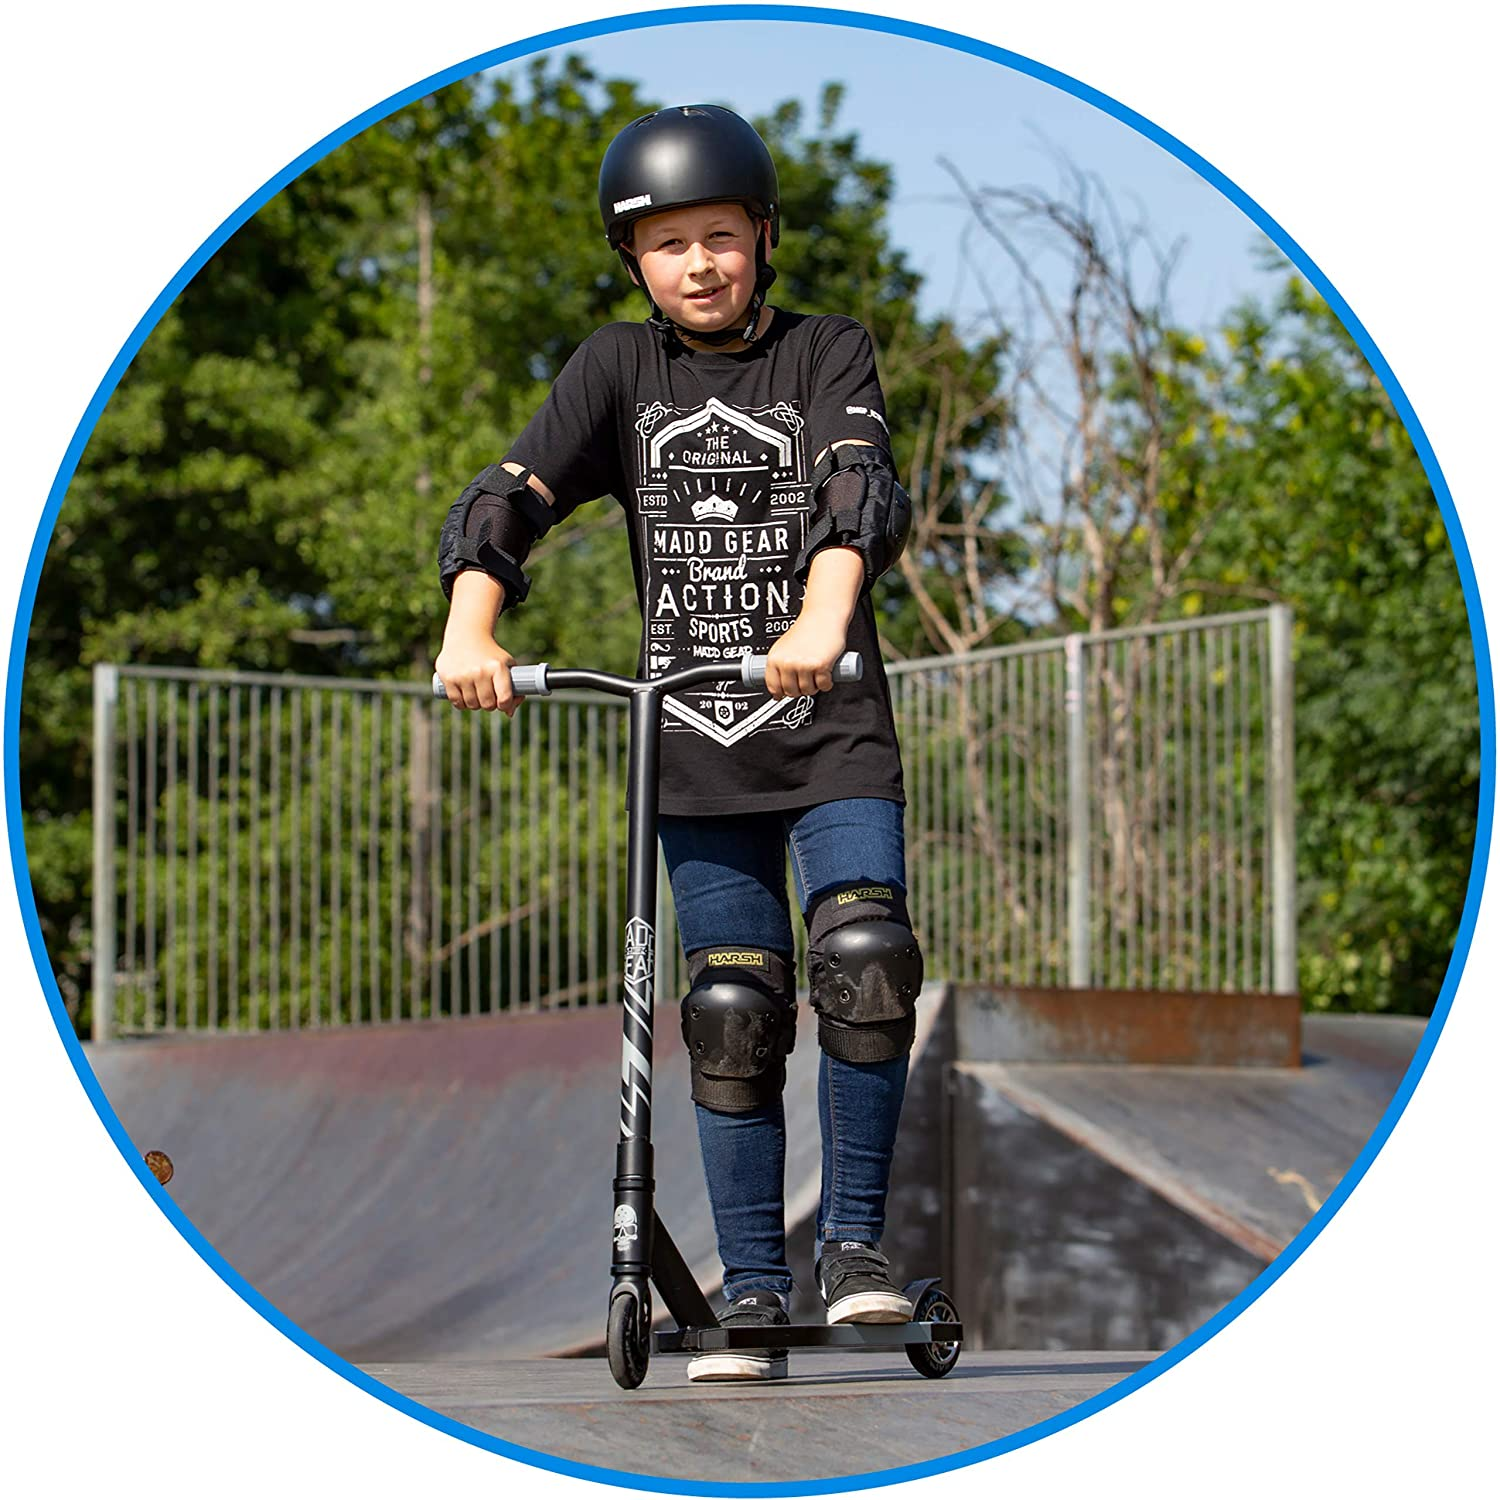 Max Rider Weight 220lbs MADD GEAR MGP Kick Series World/'s #1 Pro Scooter Brand 3 Year Manufacturer/'s Warranty Built to Last!Comes in Multiple Colors /& Models Suits Boys /& Girls Ages 6+